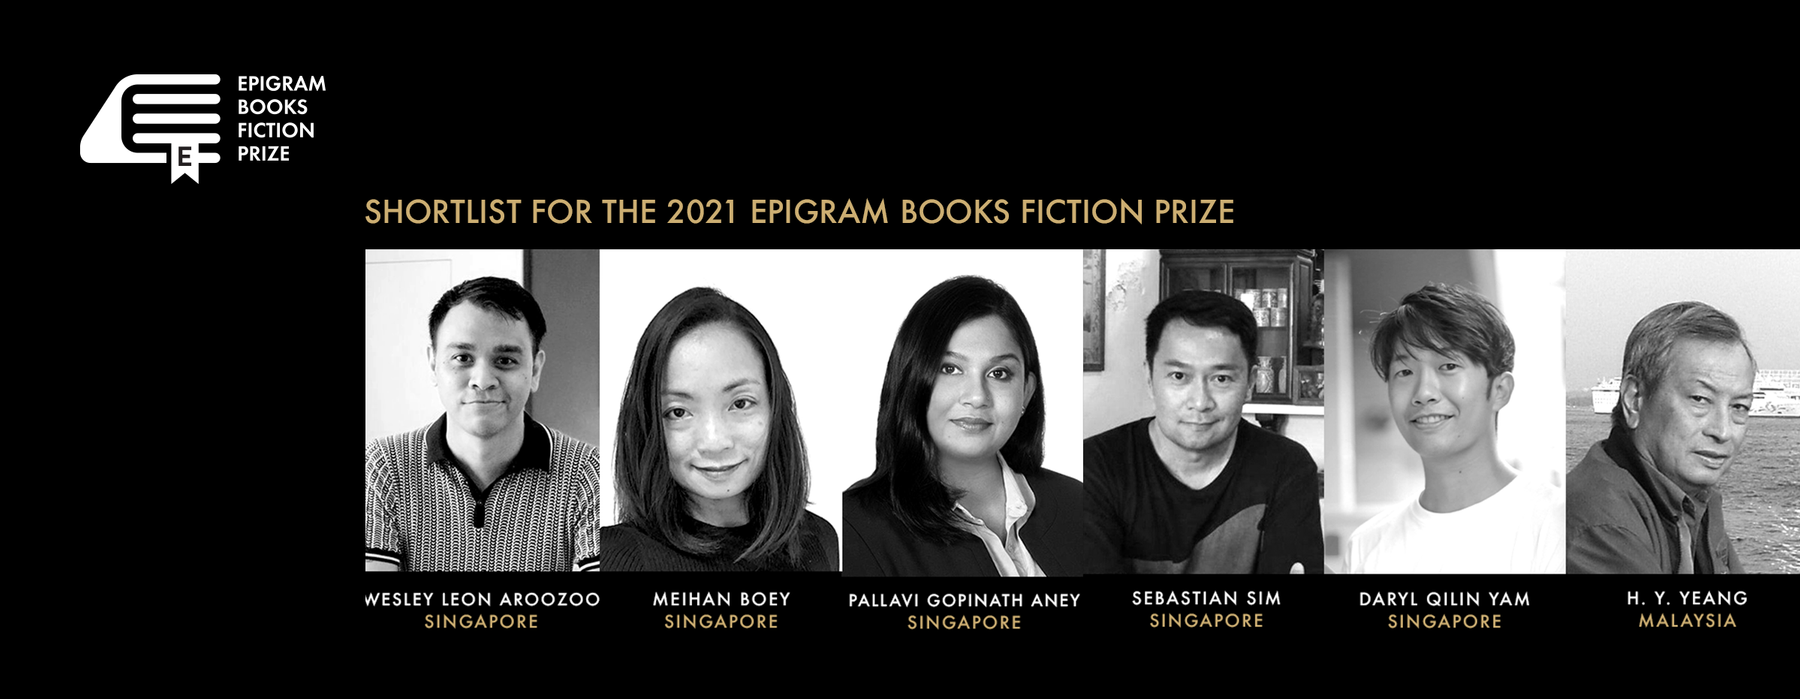 Meet the 2021 Epigram Books Fiction Prize shortlist